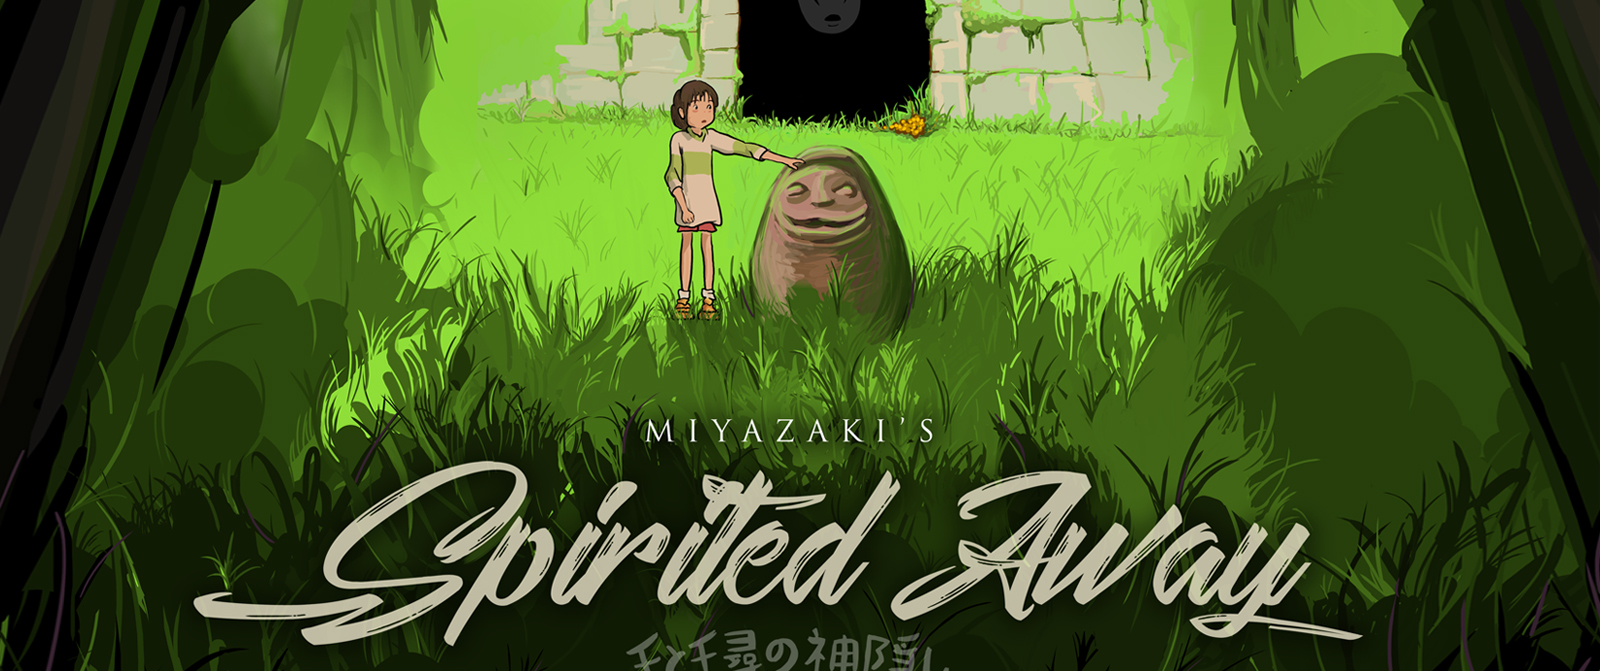 Spirited away slide.jpg